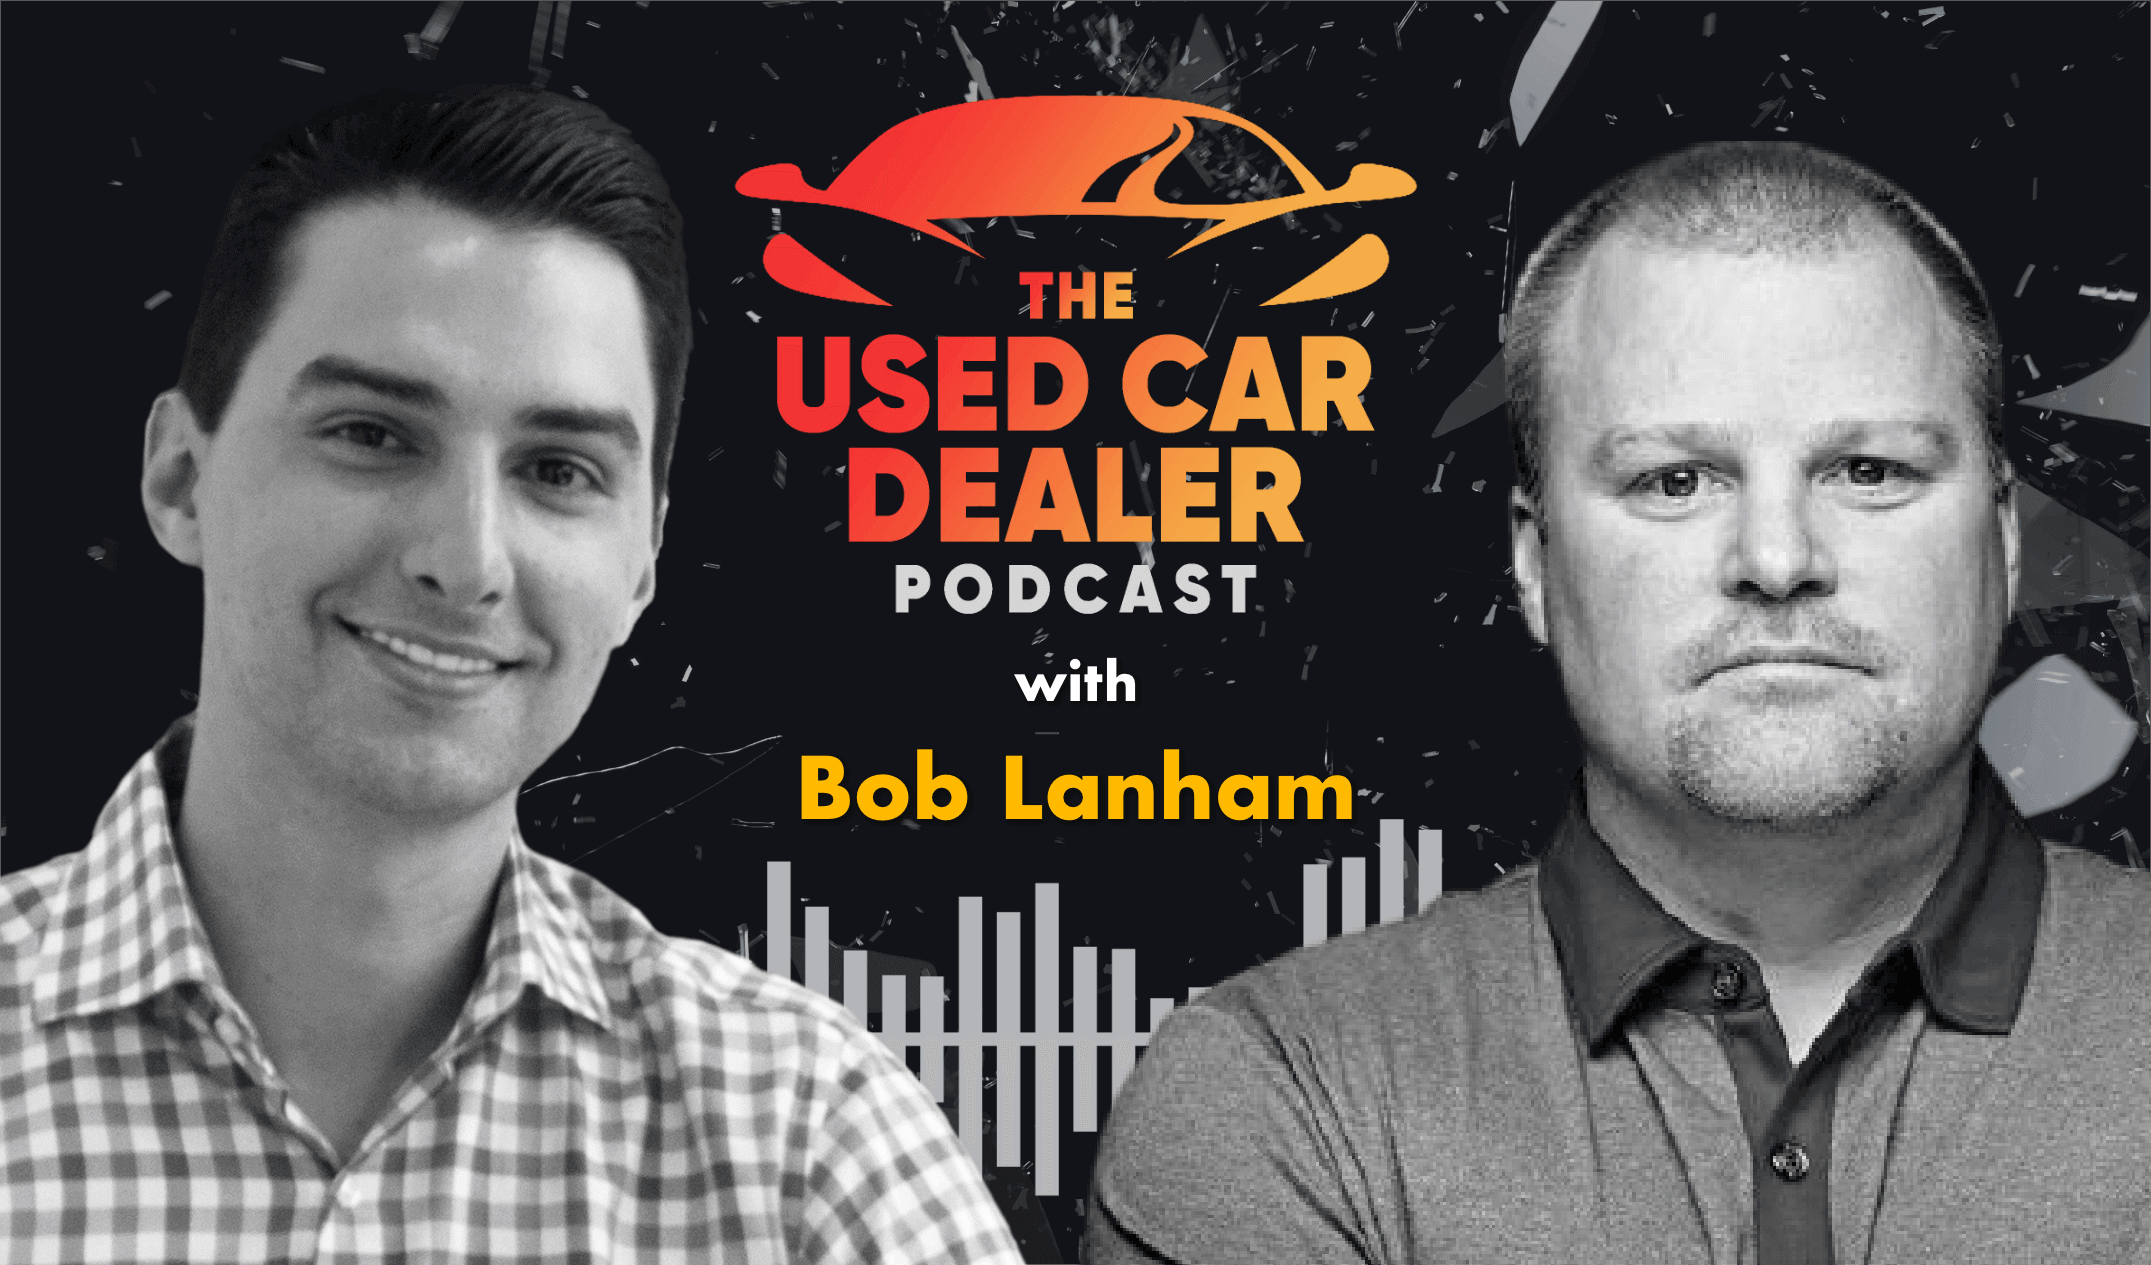 Interview with Bob Lanham of Facebook on how dealers can better leverage Facebook Marketplace and Ads